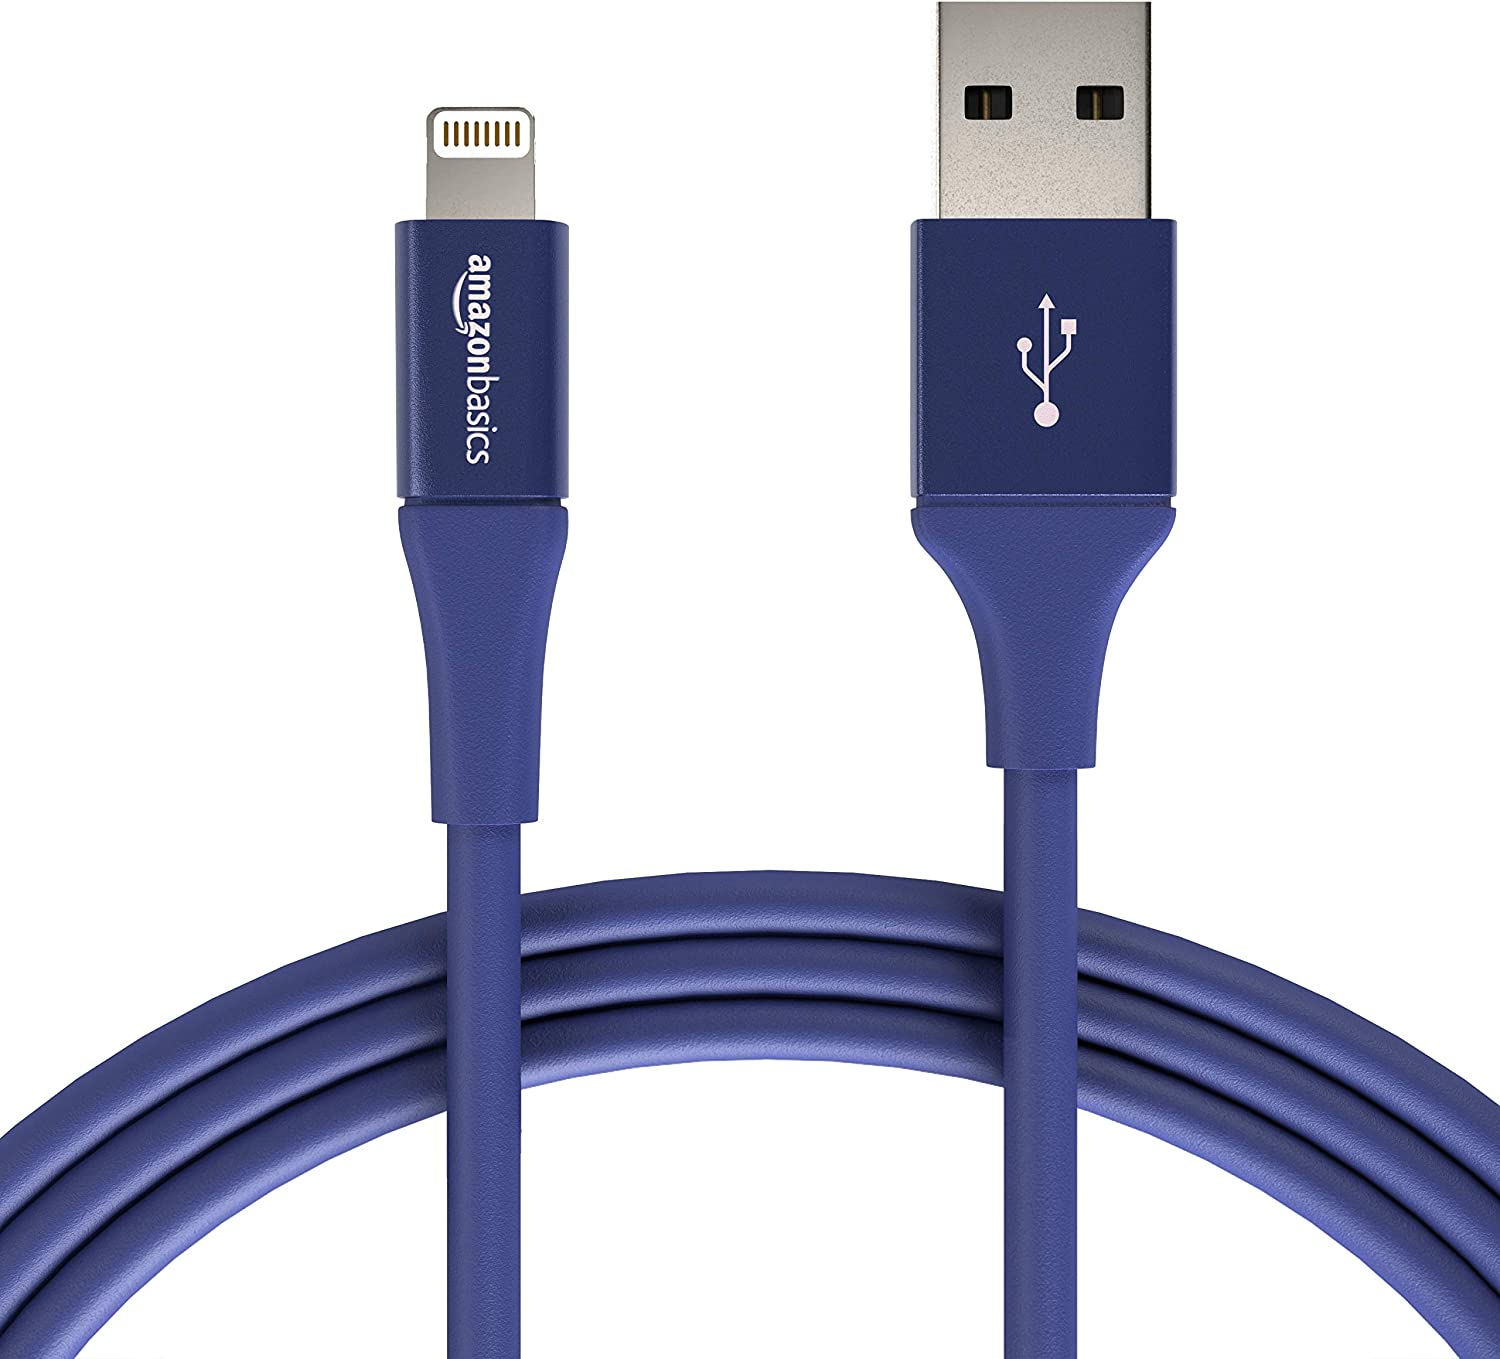 AmazonBasics USB A Cable with Lightning Connector, Premium Collection - 6 Feet (1.8 Meters) - Single - Blue